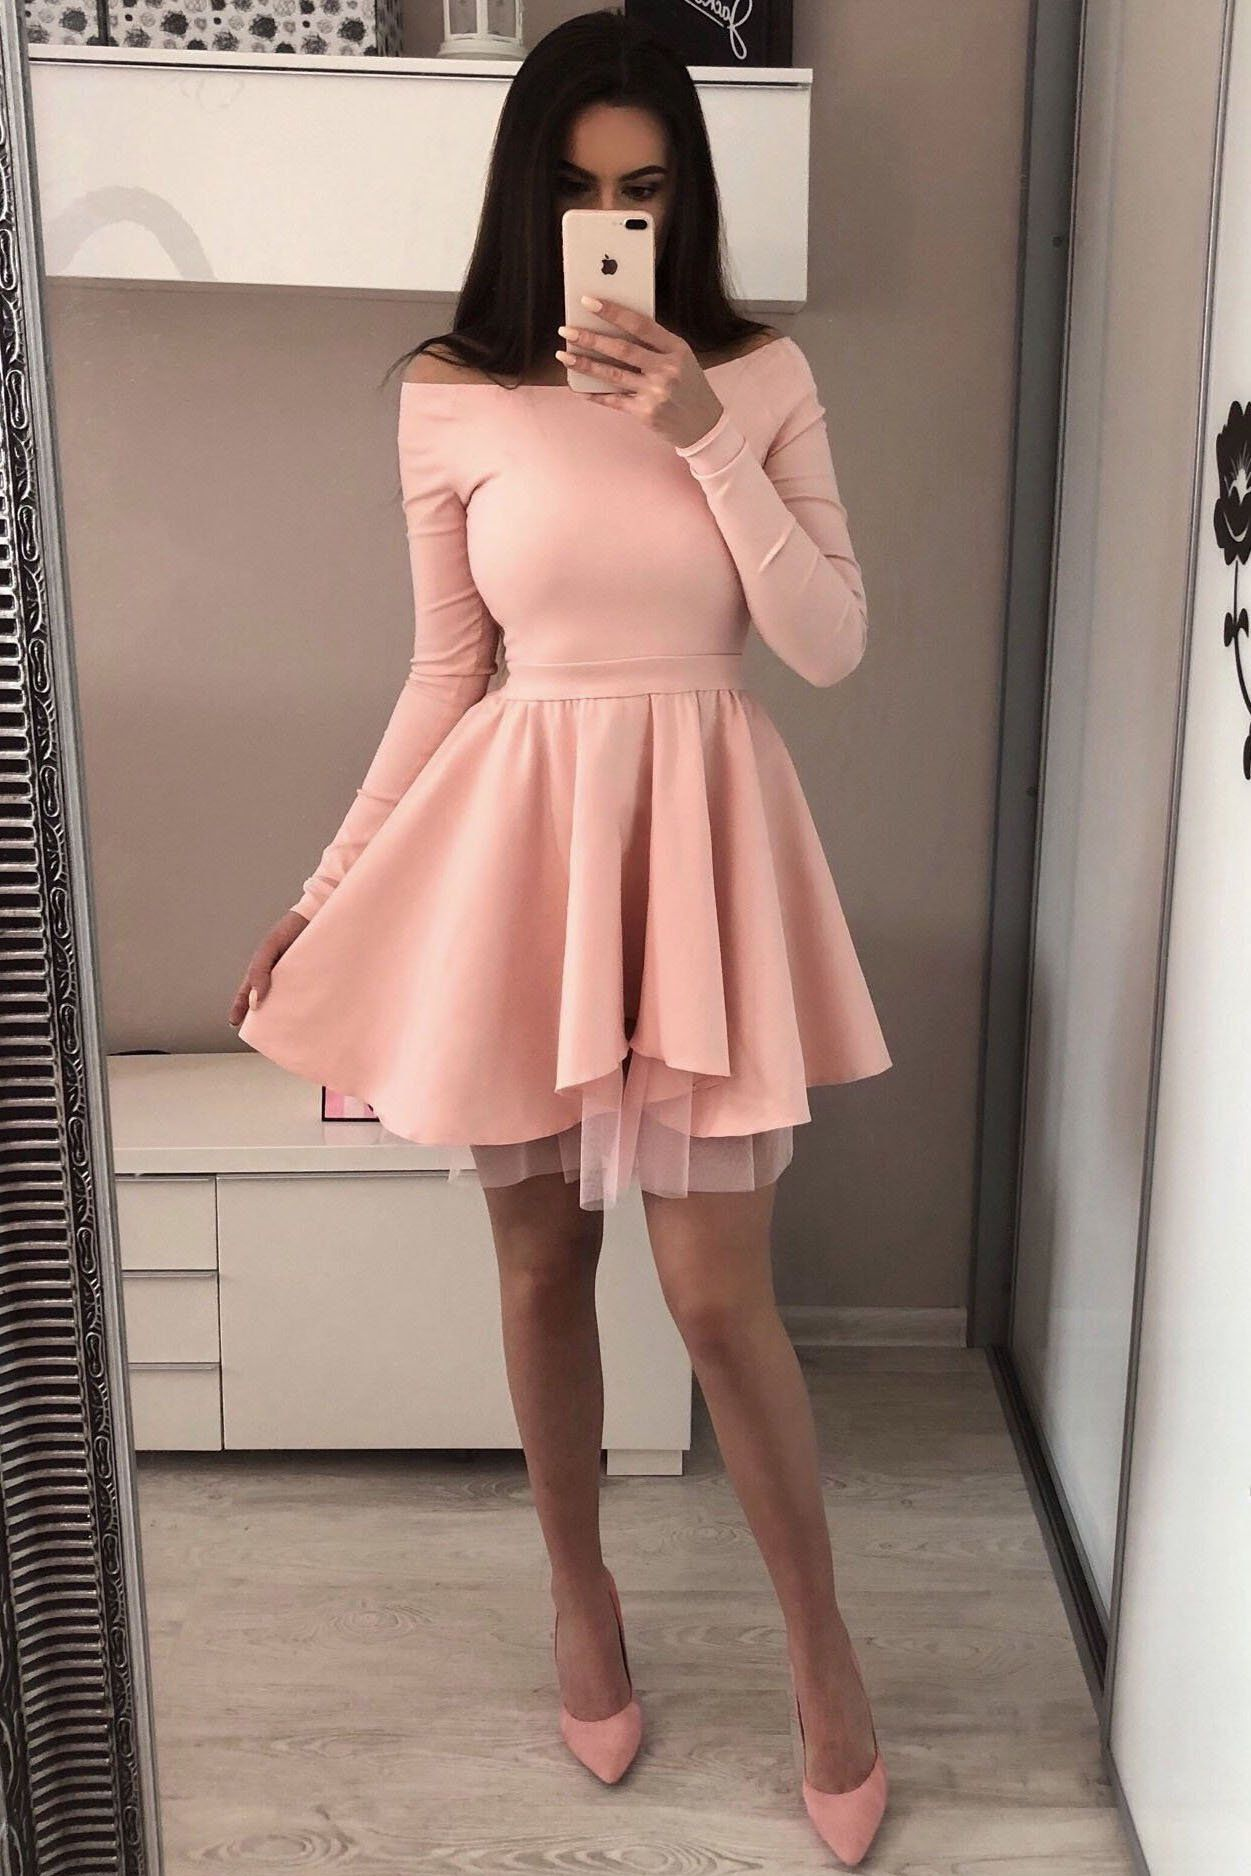 A Line Long Sleeve Blush Pink Off the Shoulder Satin Short Homecoming Dresses - Long sleeve homecoming dresses, Short red prom dresses, Red homecoming dresses, Pink homecoming dress, Red prom dress, Black homecoming dress - A Line Long Sleeve Blush Pink Off the Shoulder Satin Short Homecoming Dresses, SSA, This dress could be custom made, there are no extra cost to do custom size and color